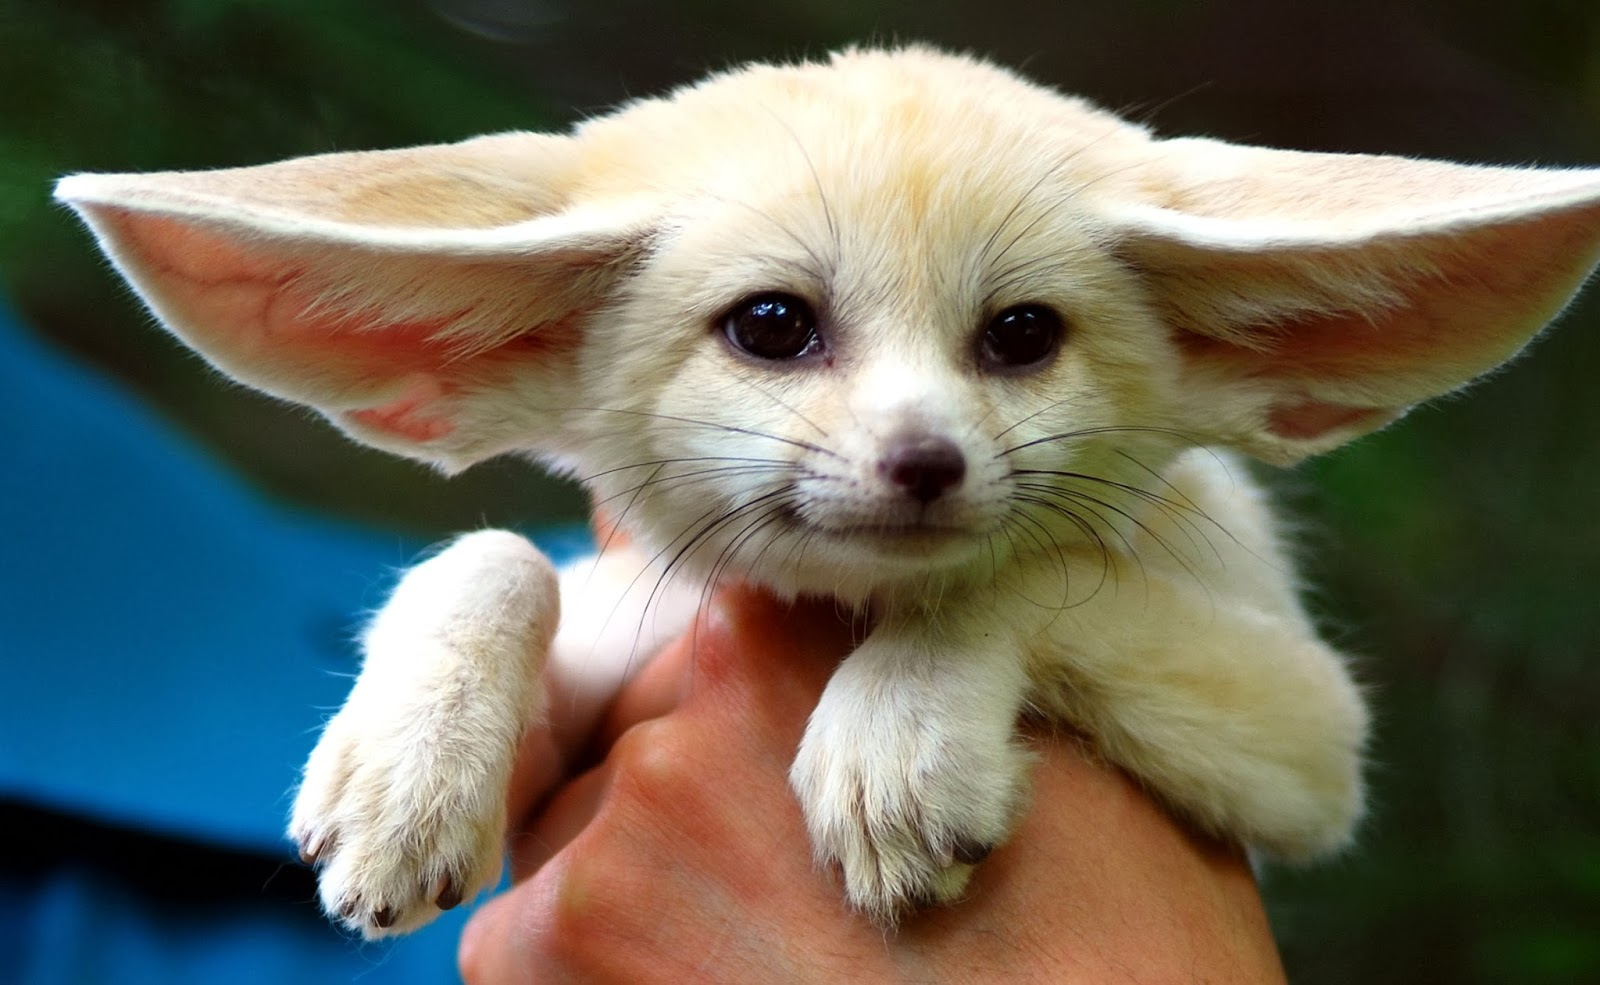 Fennec hare hoax - photo#17